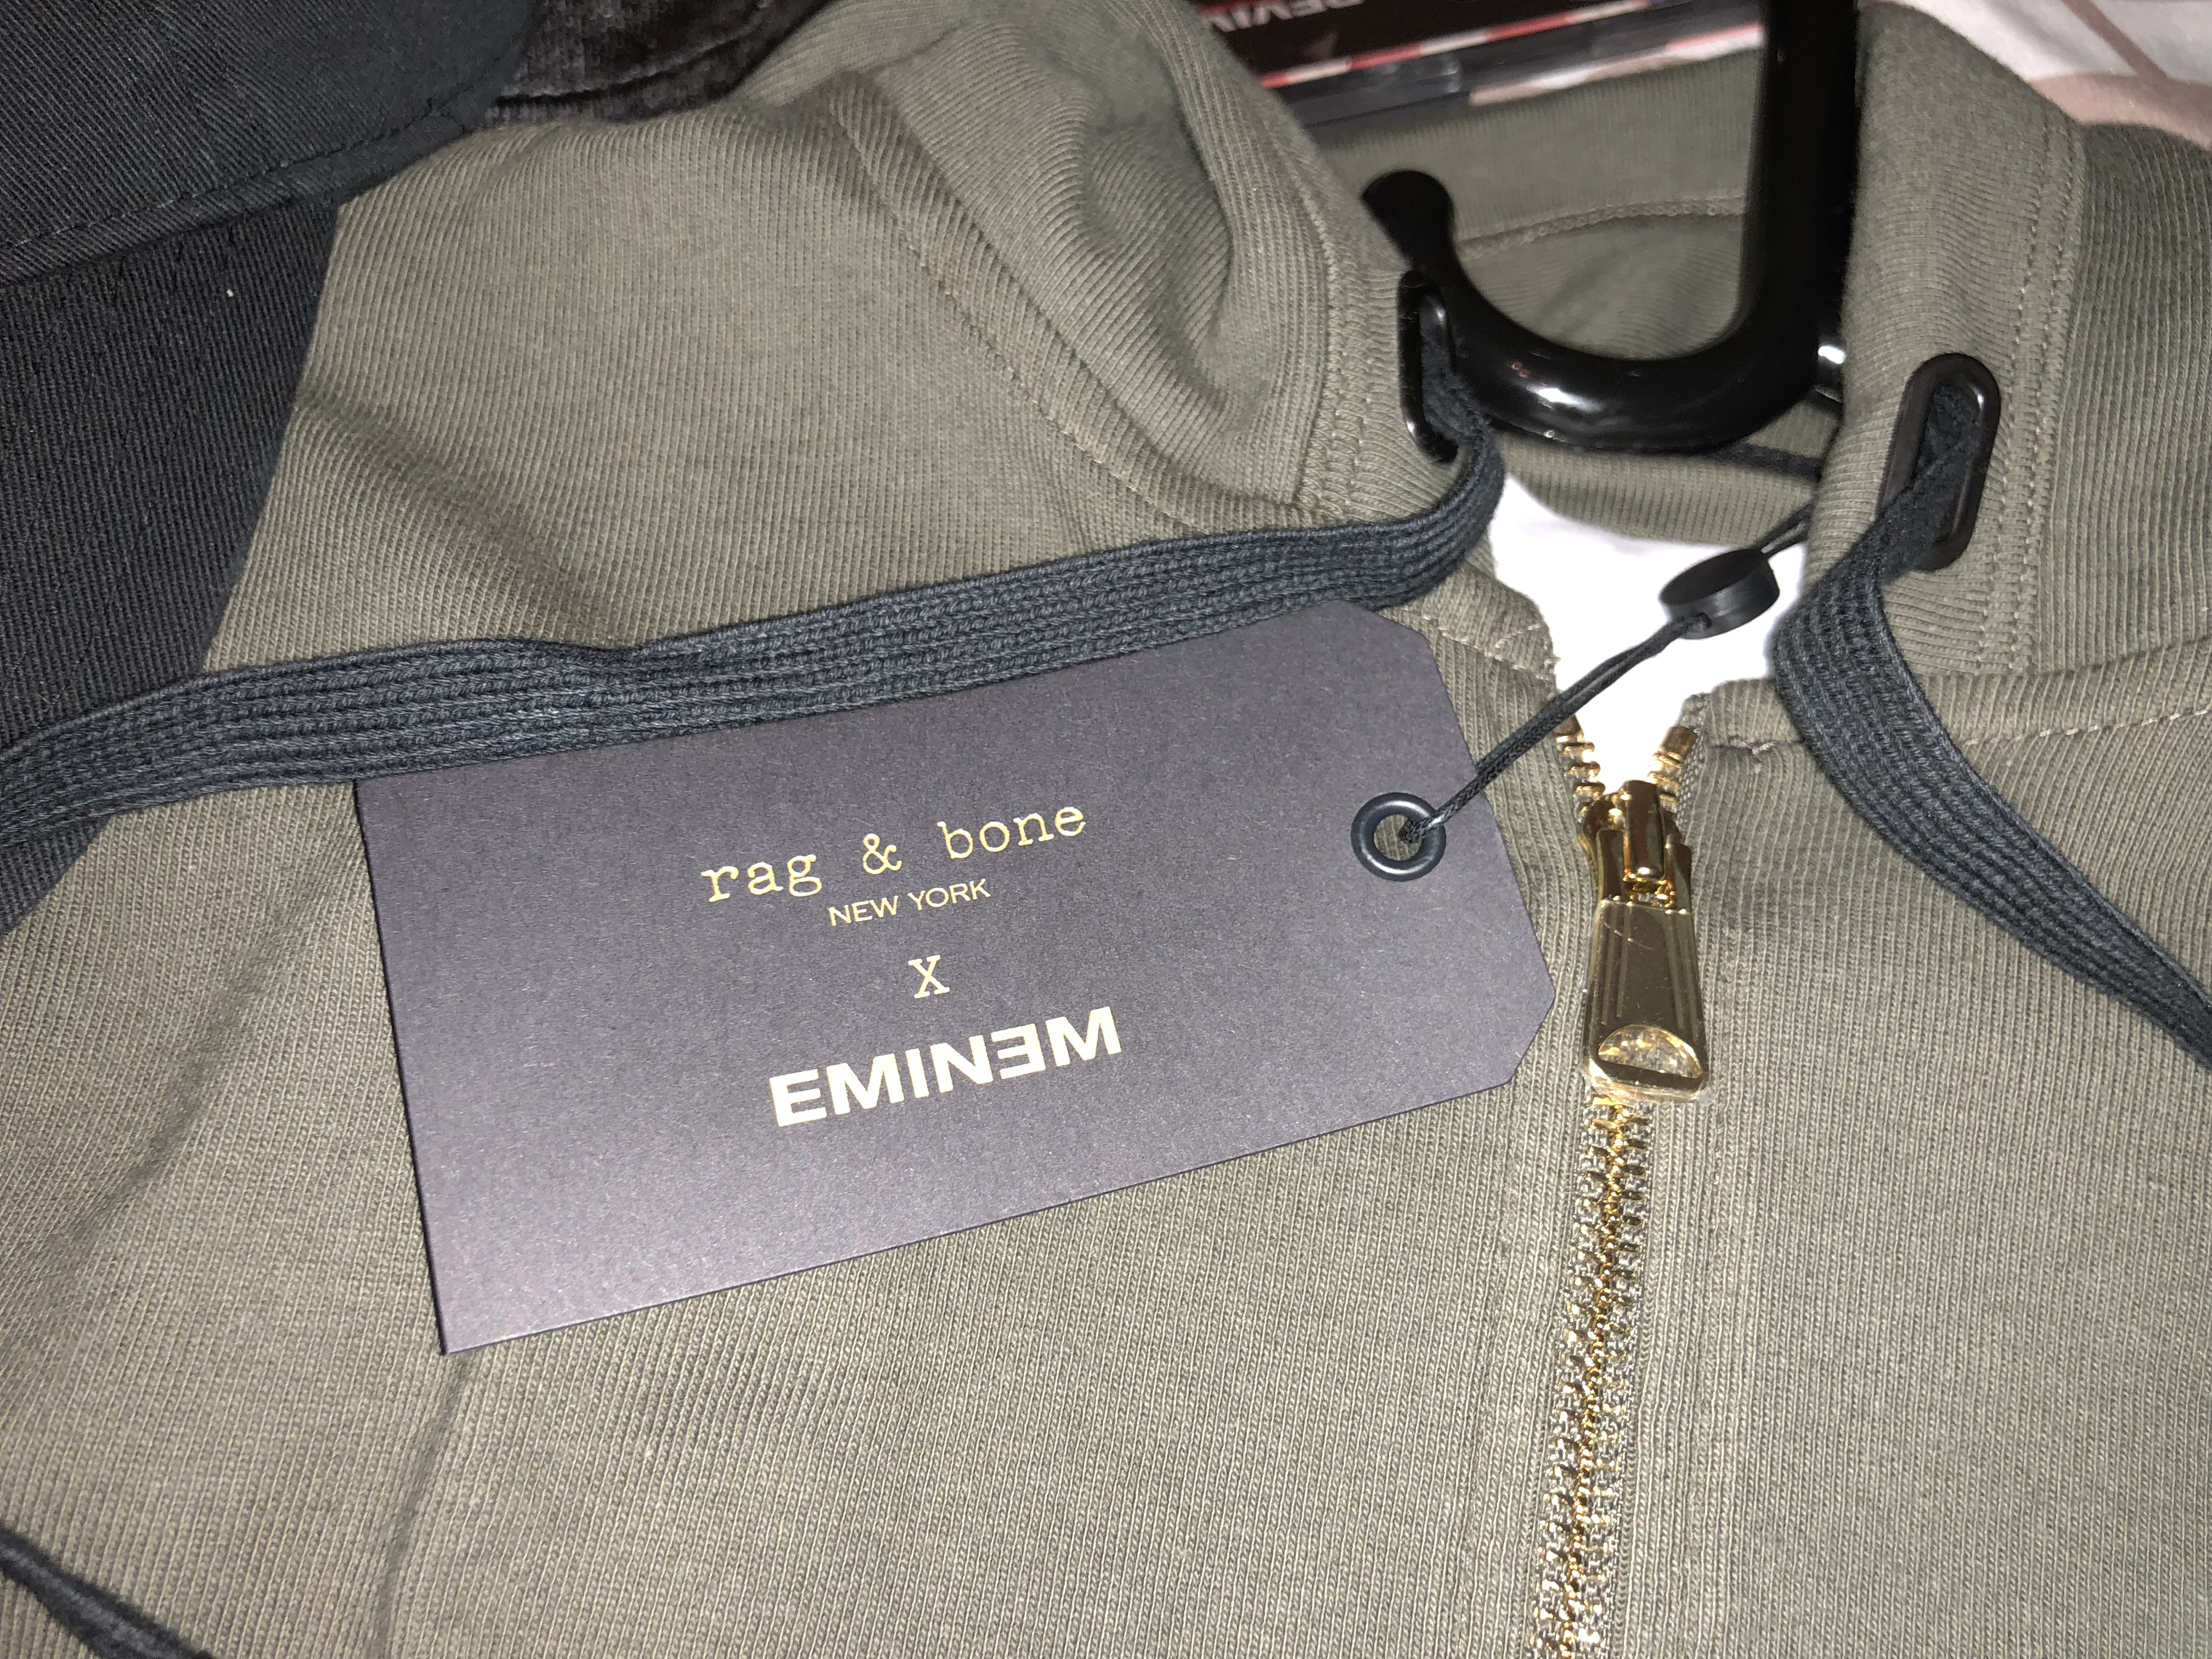 Rag & bone X Eminem: The Icon Project. Unboxing Icon Hoodie. The best Eminem's merch in recent years